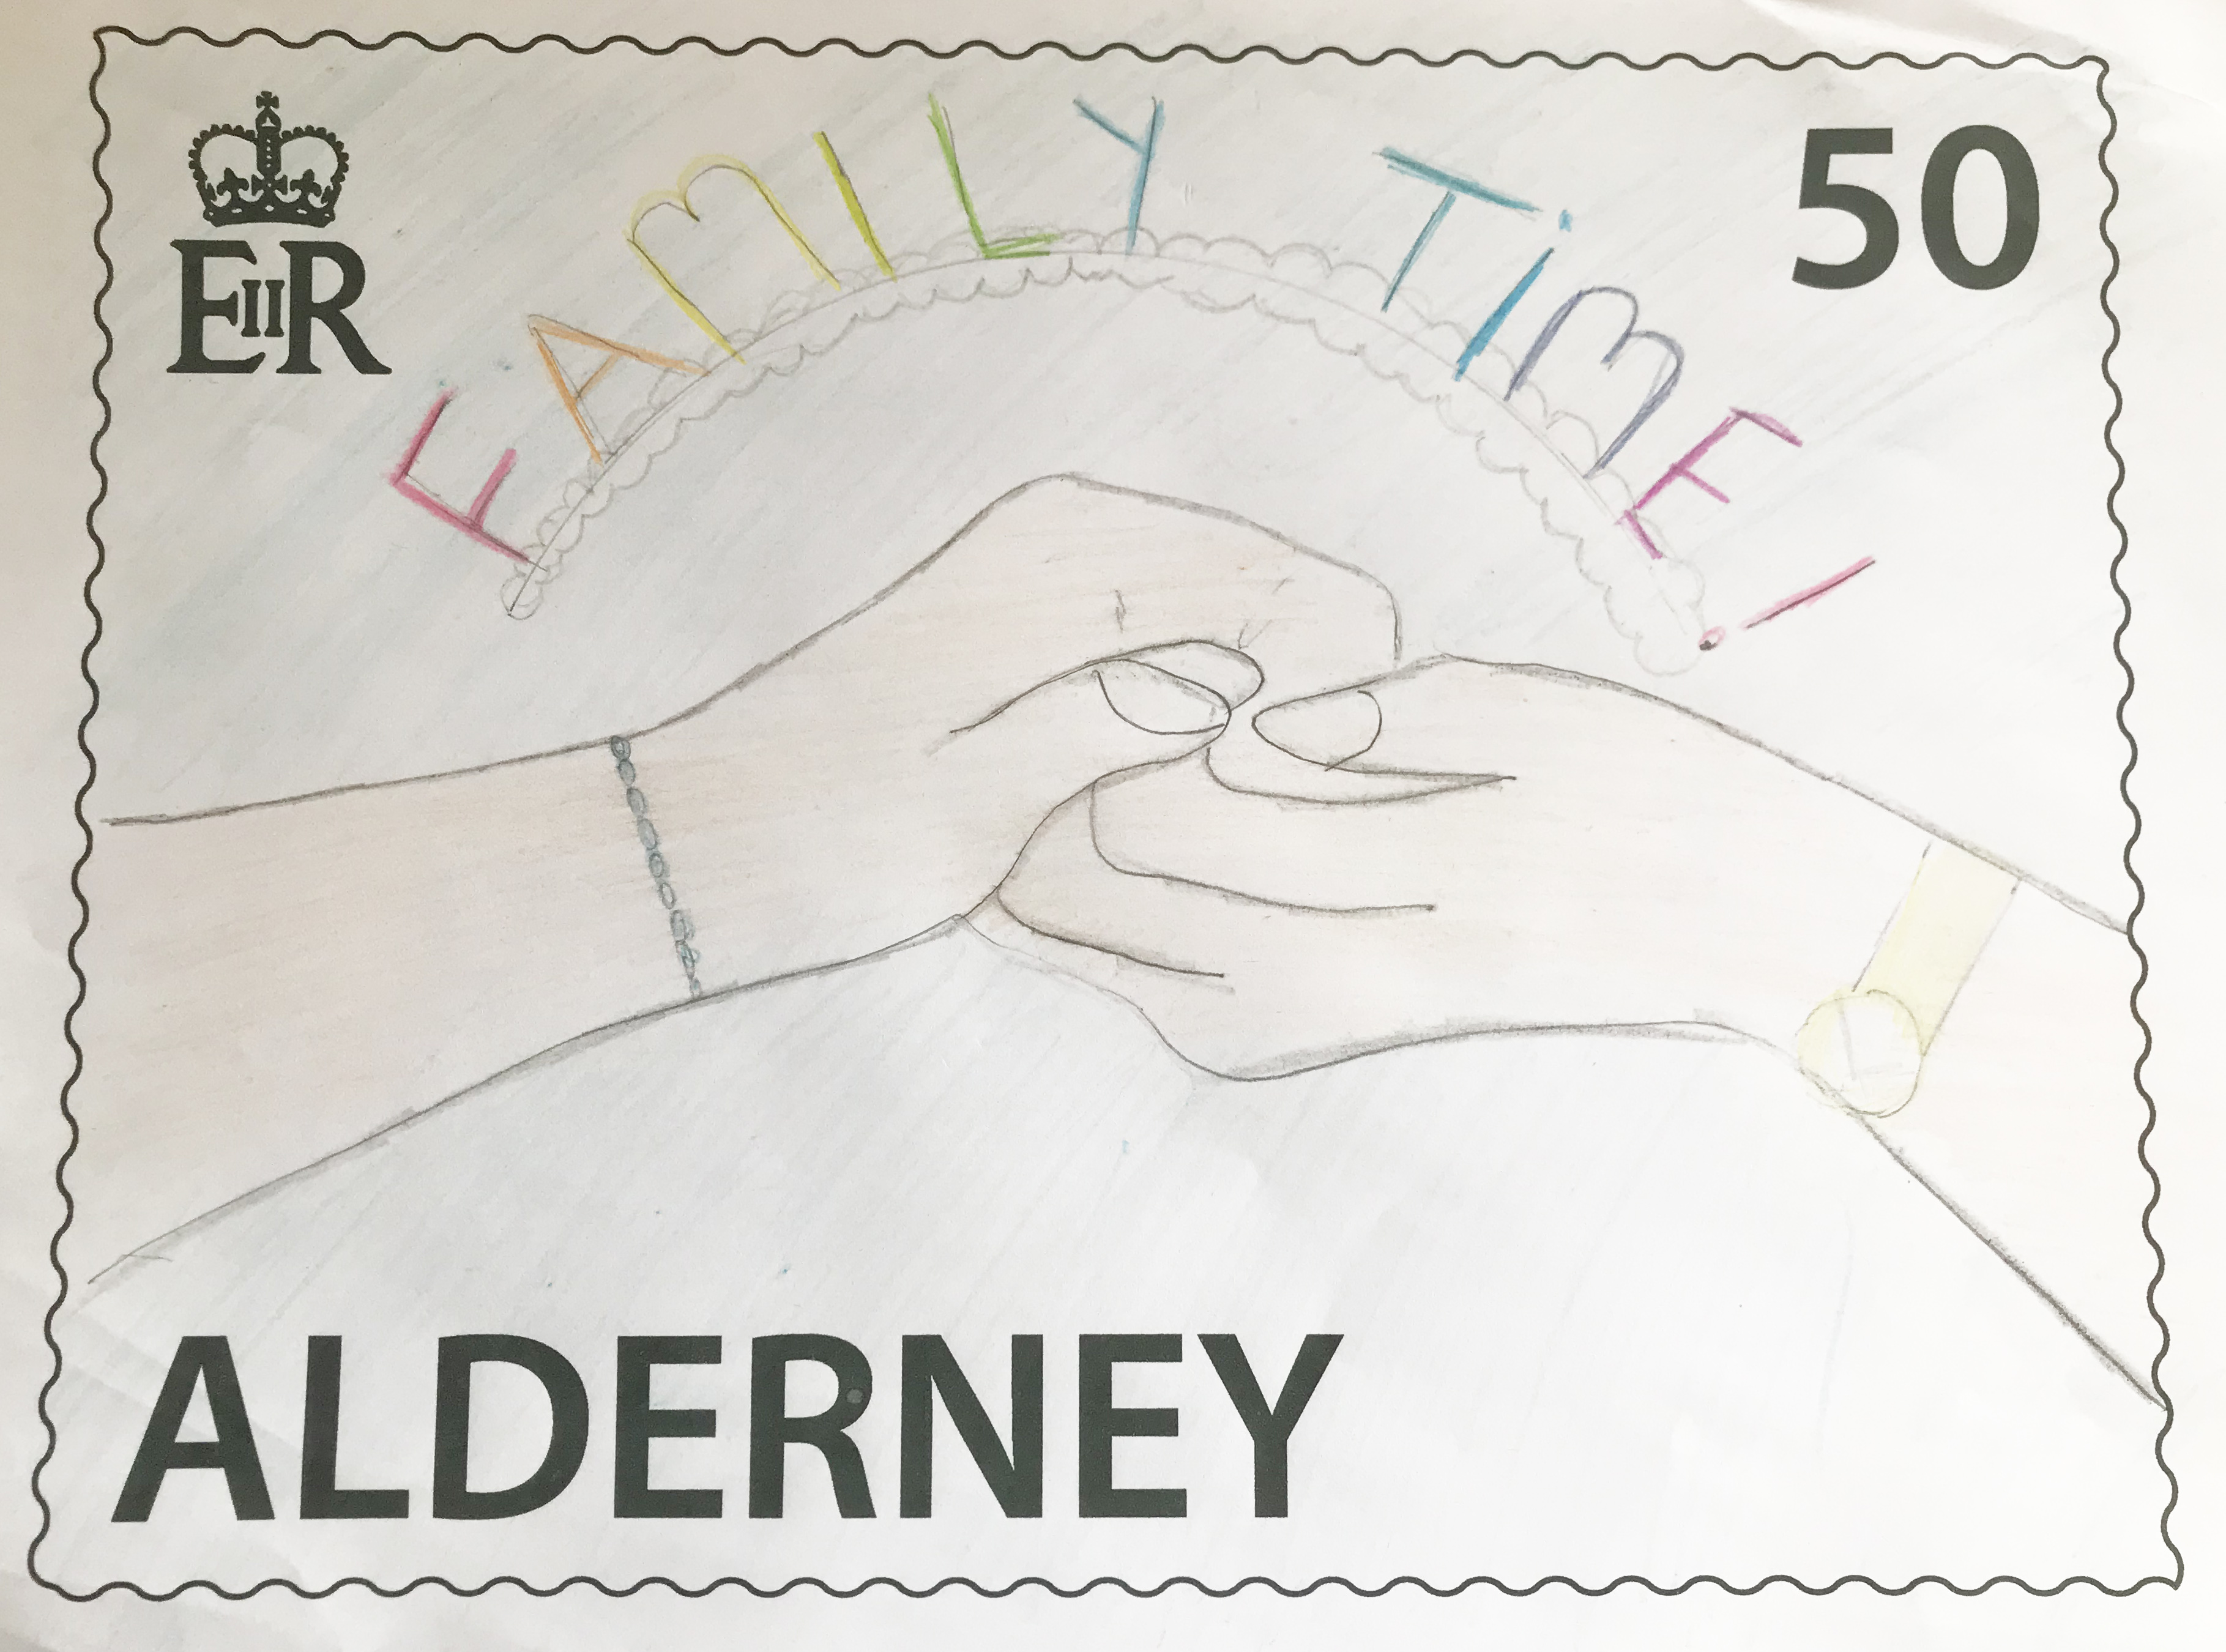 School children's designs chosen for AlderneySpirit stamp competition